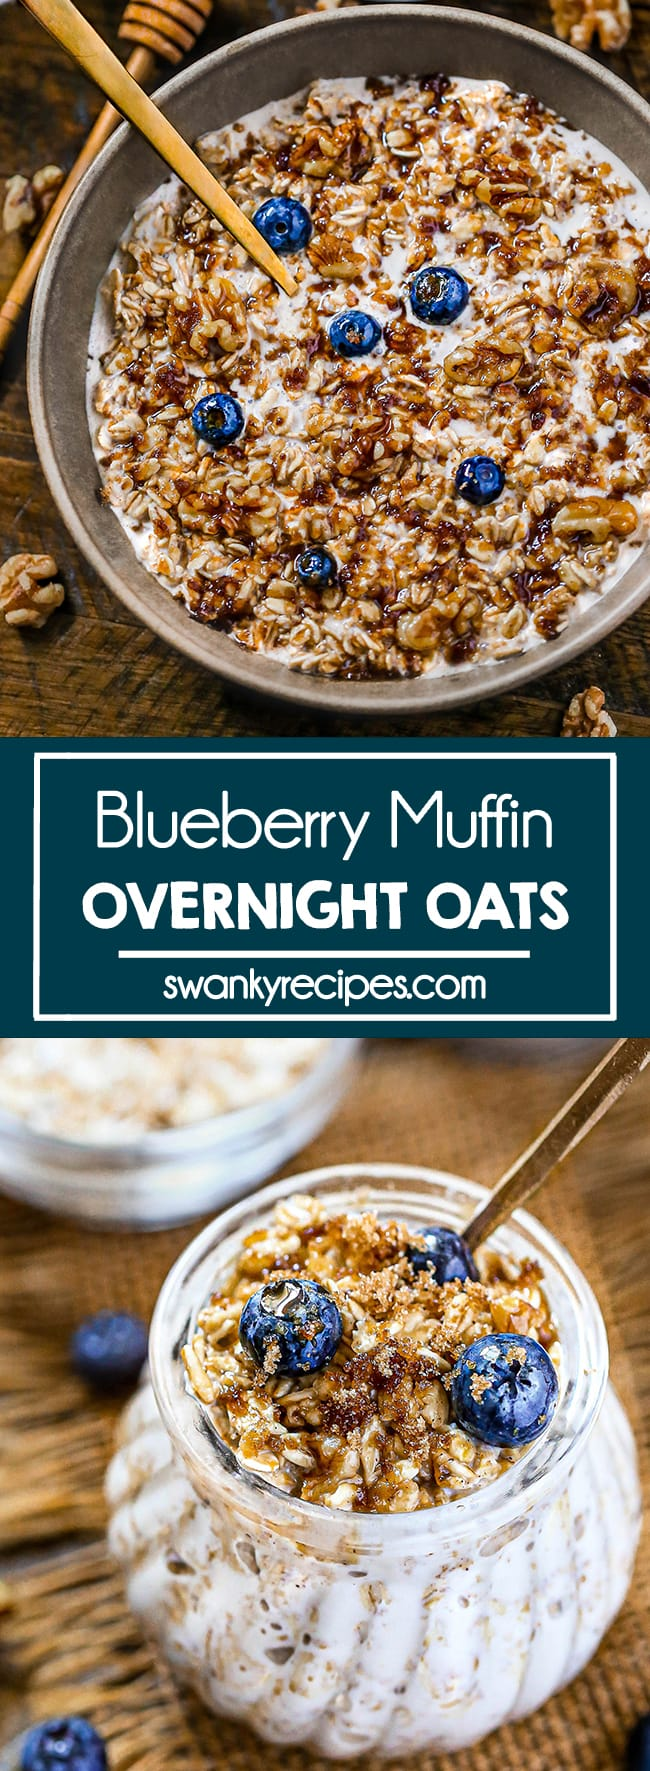 Blueberry Muffin Overnight Oats - A bowl of oats in milk with fresh blueberries, walnuts, and brown sugar on top. Served on a wooden tray. Text in center reads blueberry muffin overnight oats. Second image features a small glass jar filled with oats. Blueberries, brown sugar, walnuts, and maple syrup are garnished on top.